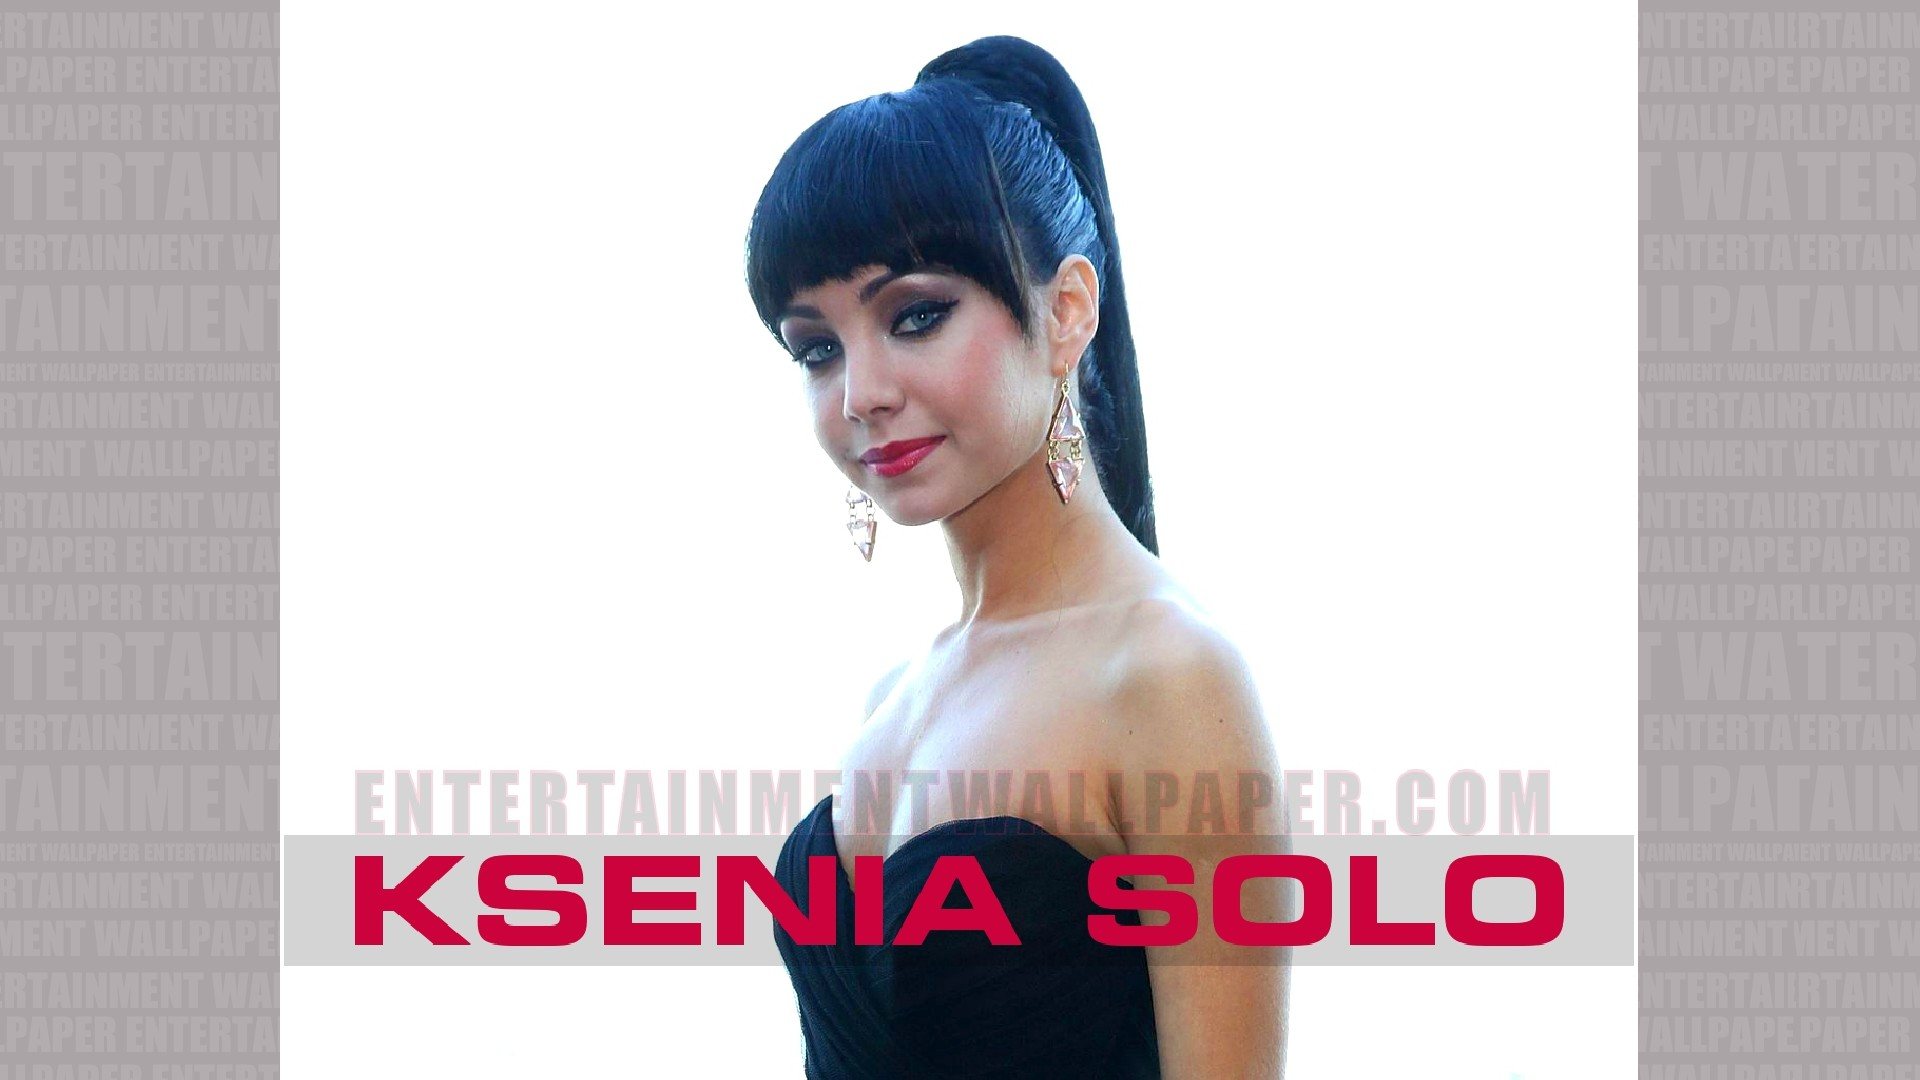 Ksenia Solo Wallpapers and Background Images   stmednet 1920x1080